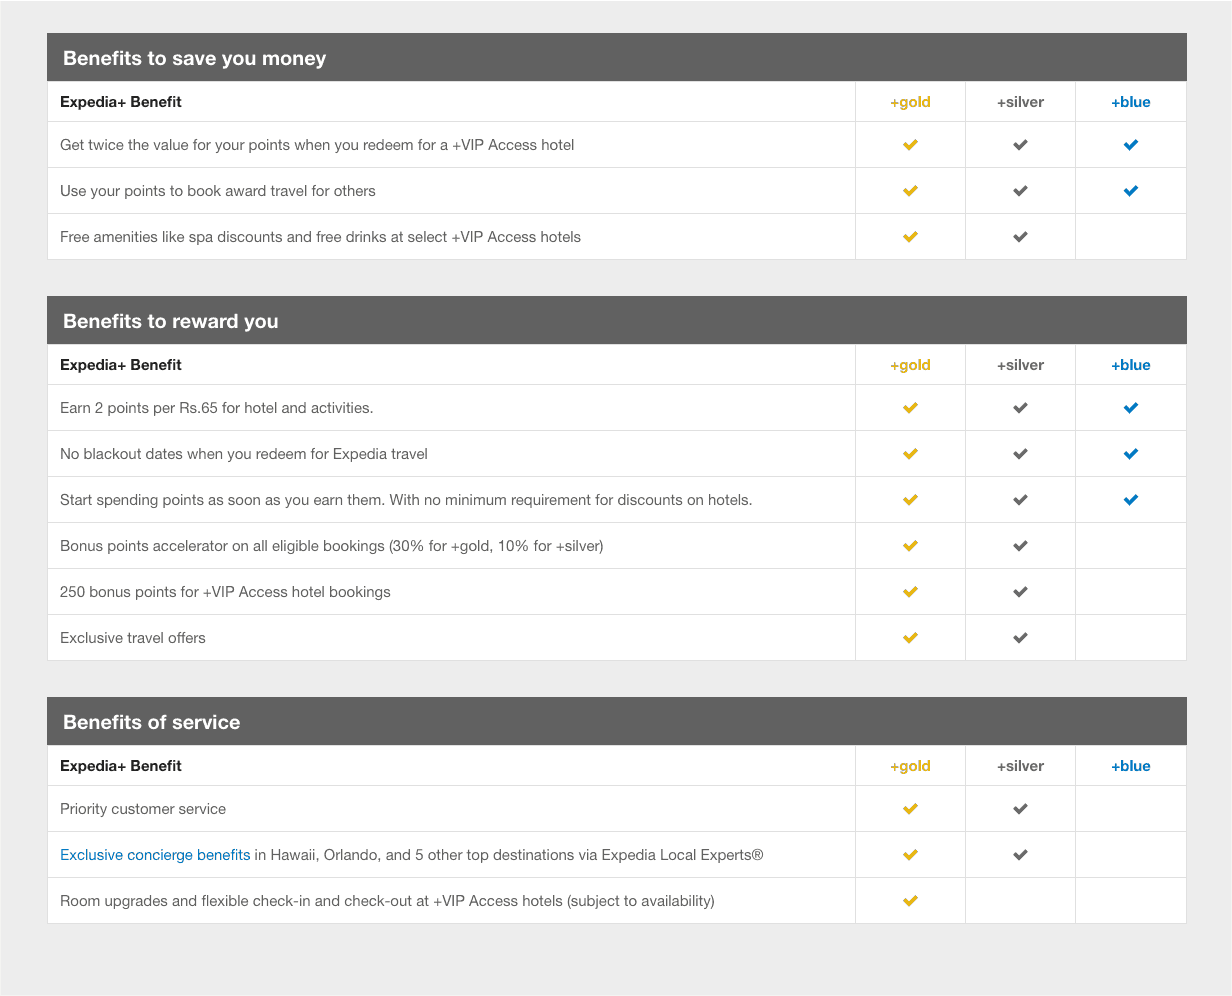 Expedia+ Loyalty Rewards Program Tiers and Benefits